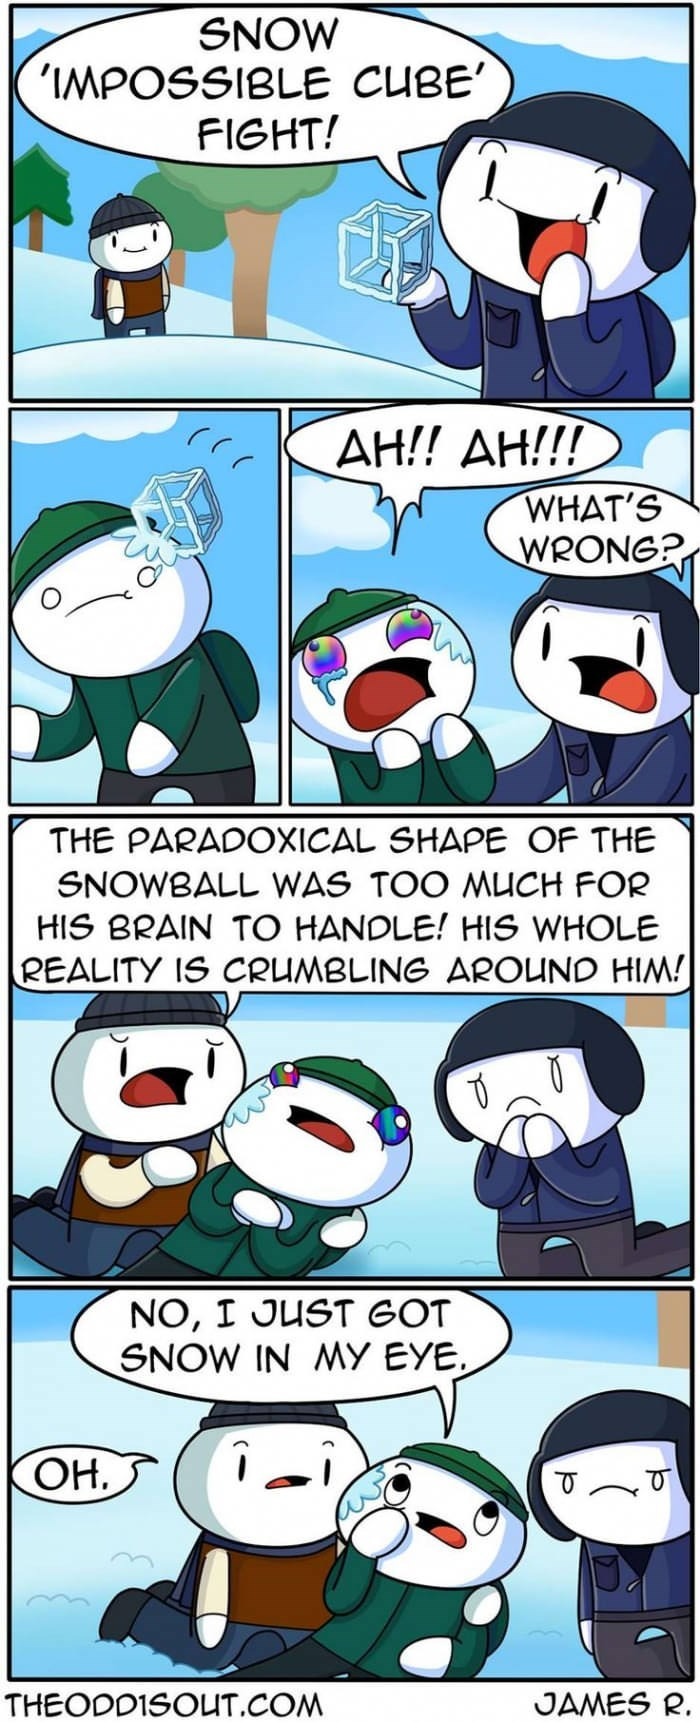 Cartoon - SNOW 'IMPOSSIBLE CUBE FIGHT! АН!! АН!! WHAT'S WRONG? THE PARADOXICAL SHAPE OF THE SNOWBALL WAS TOO MUCH FOR HIS BRAIN TO HANDLE! HIS WHOLE REALITY IS CRUMBLING AROUND HIM! NO, I JUST GOT SNOW IN MY EYE OH.